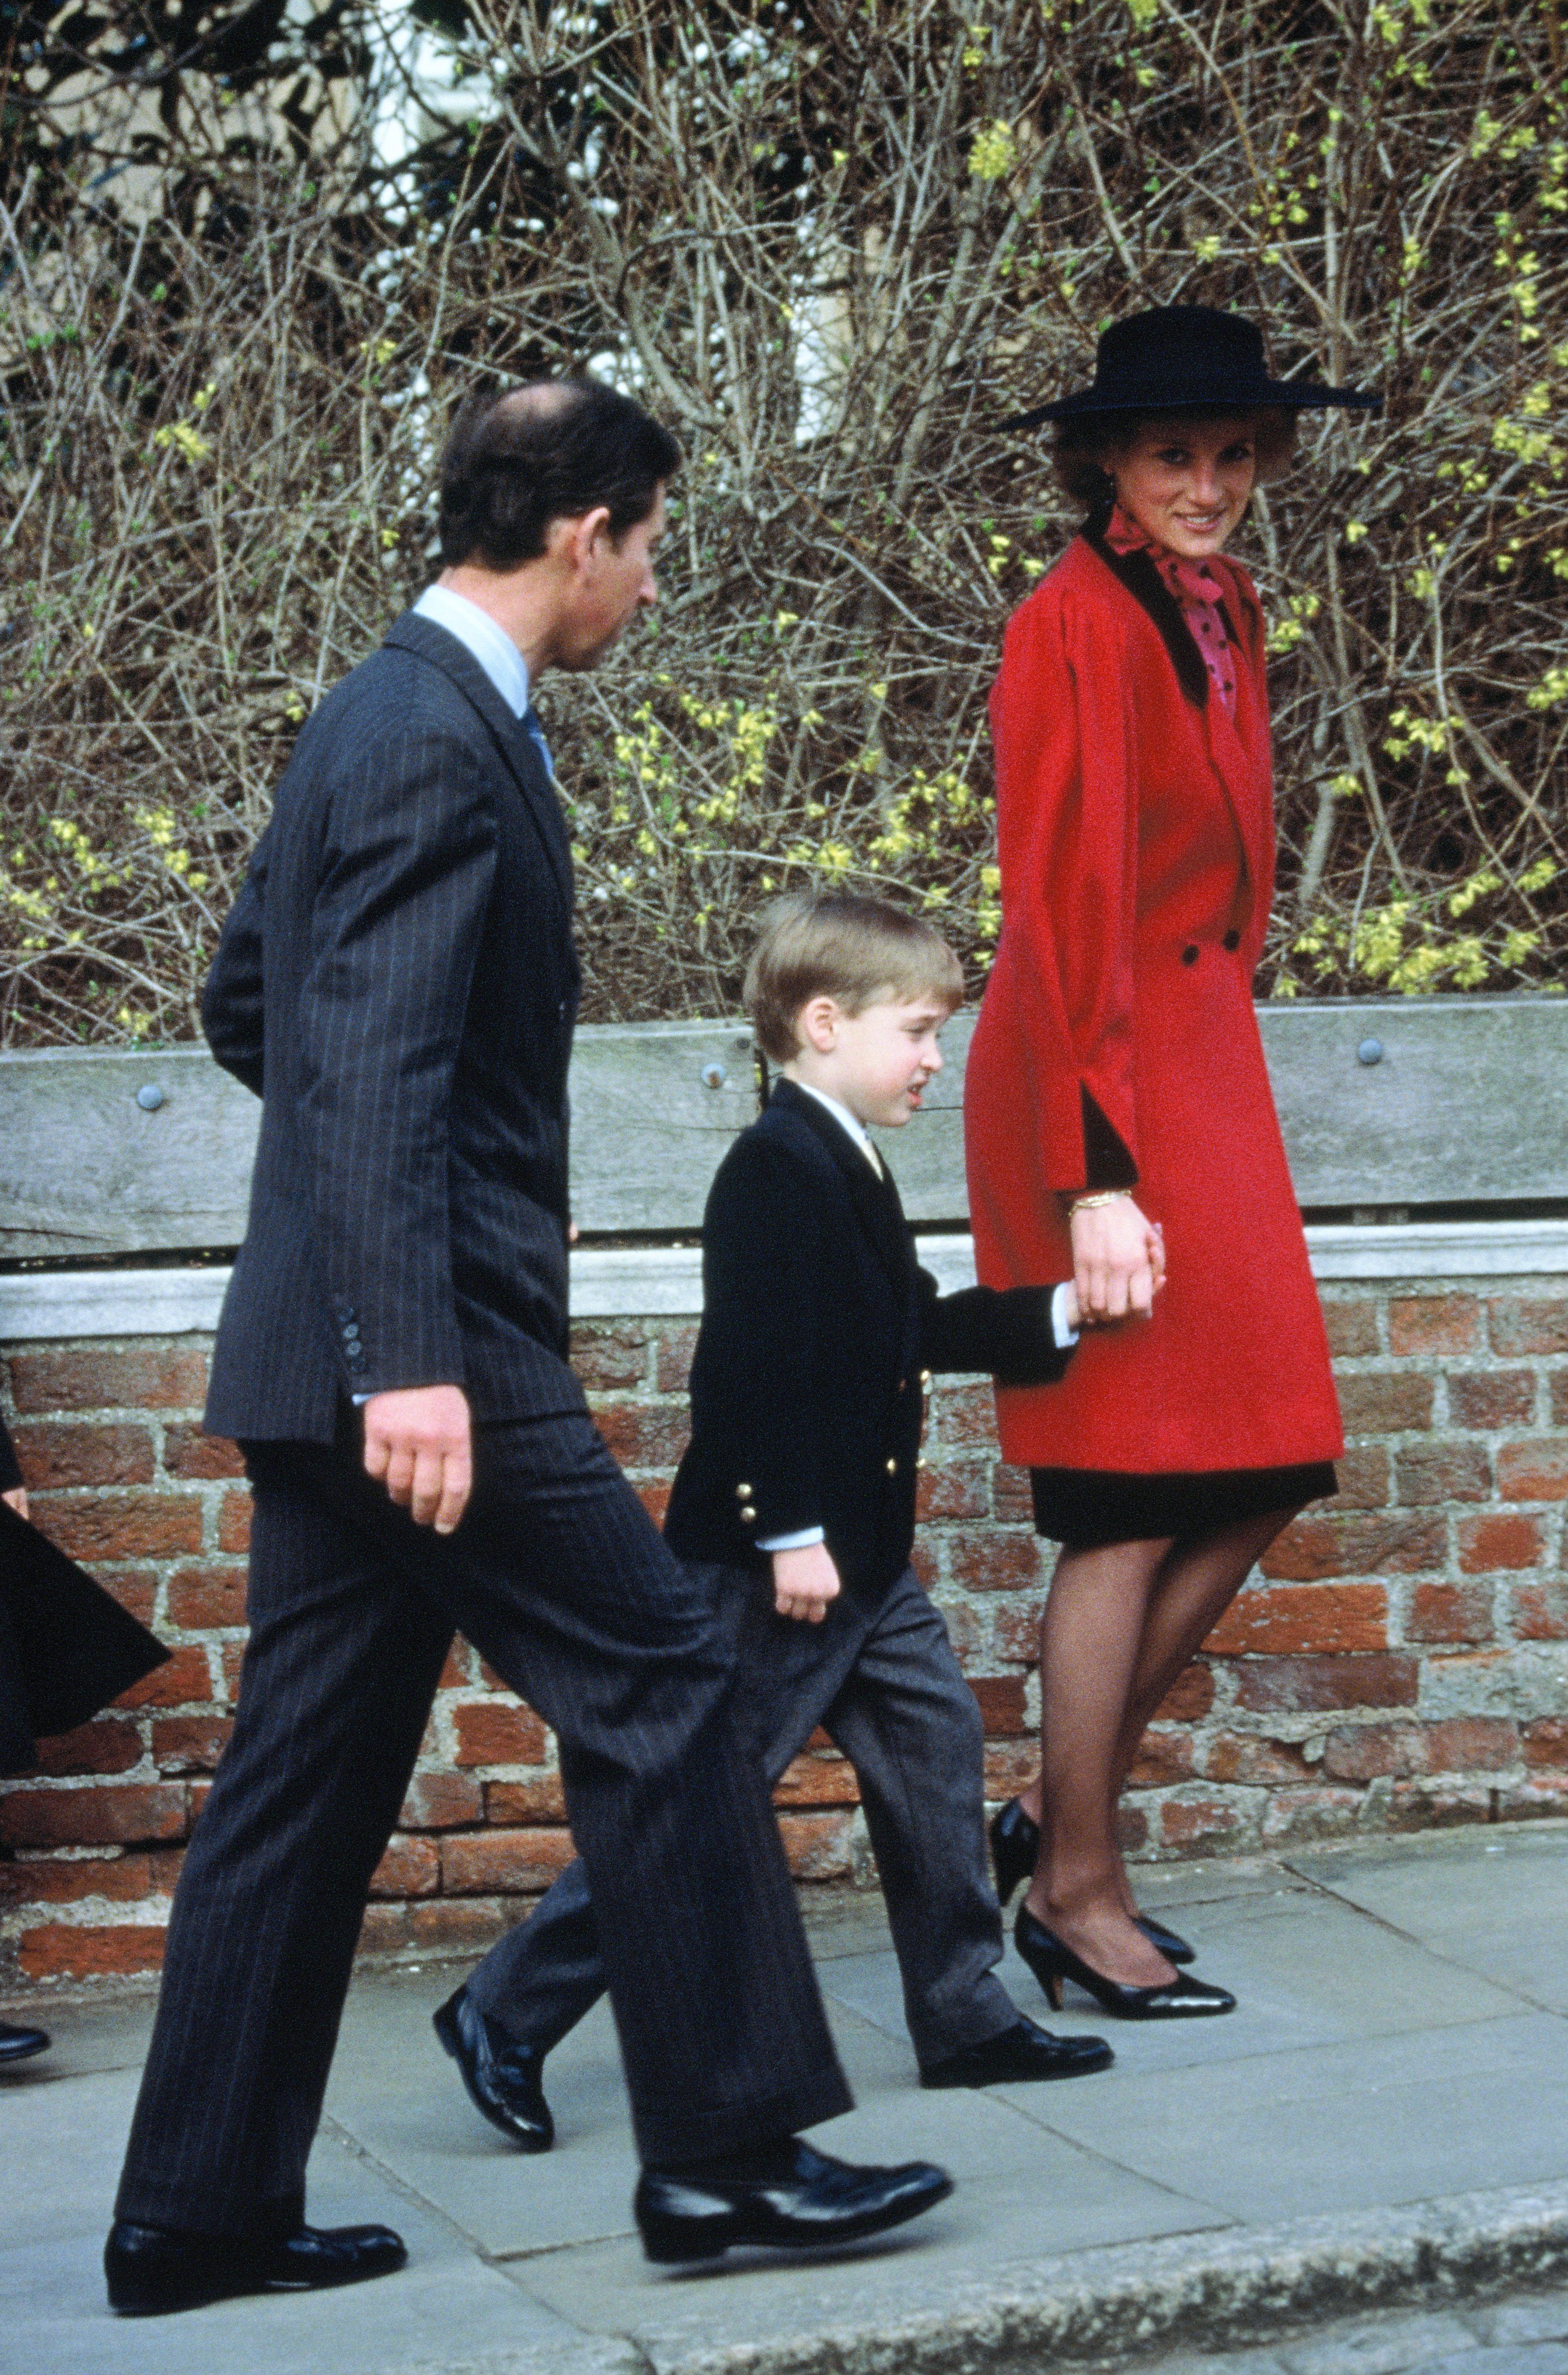 Image Credits: Getty Images | Prince Charles And Princess Diana Walking With Their Son, Prince William